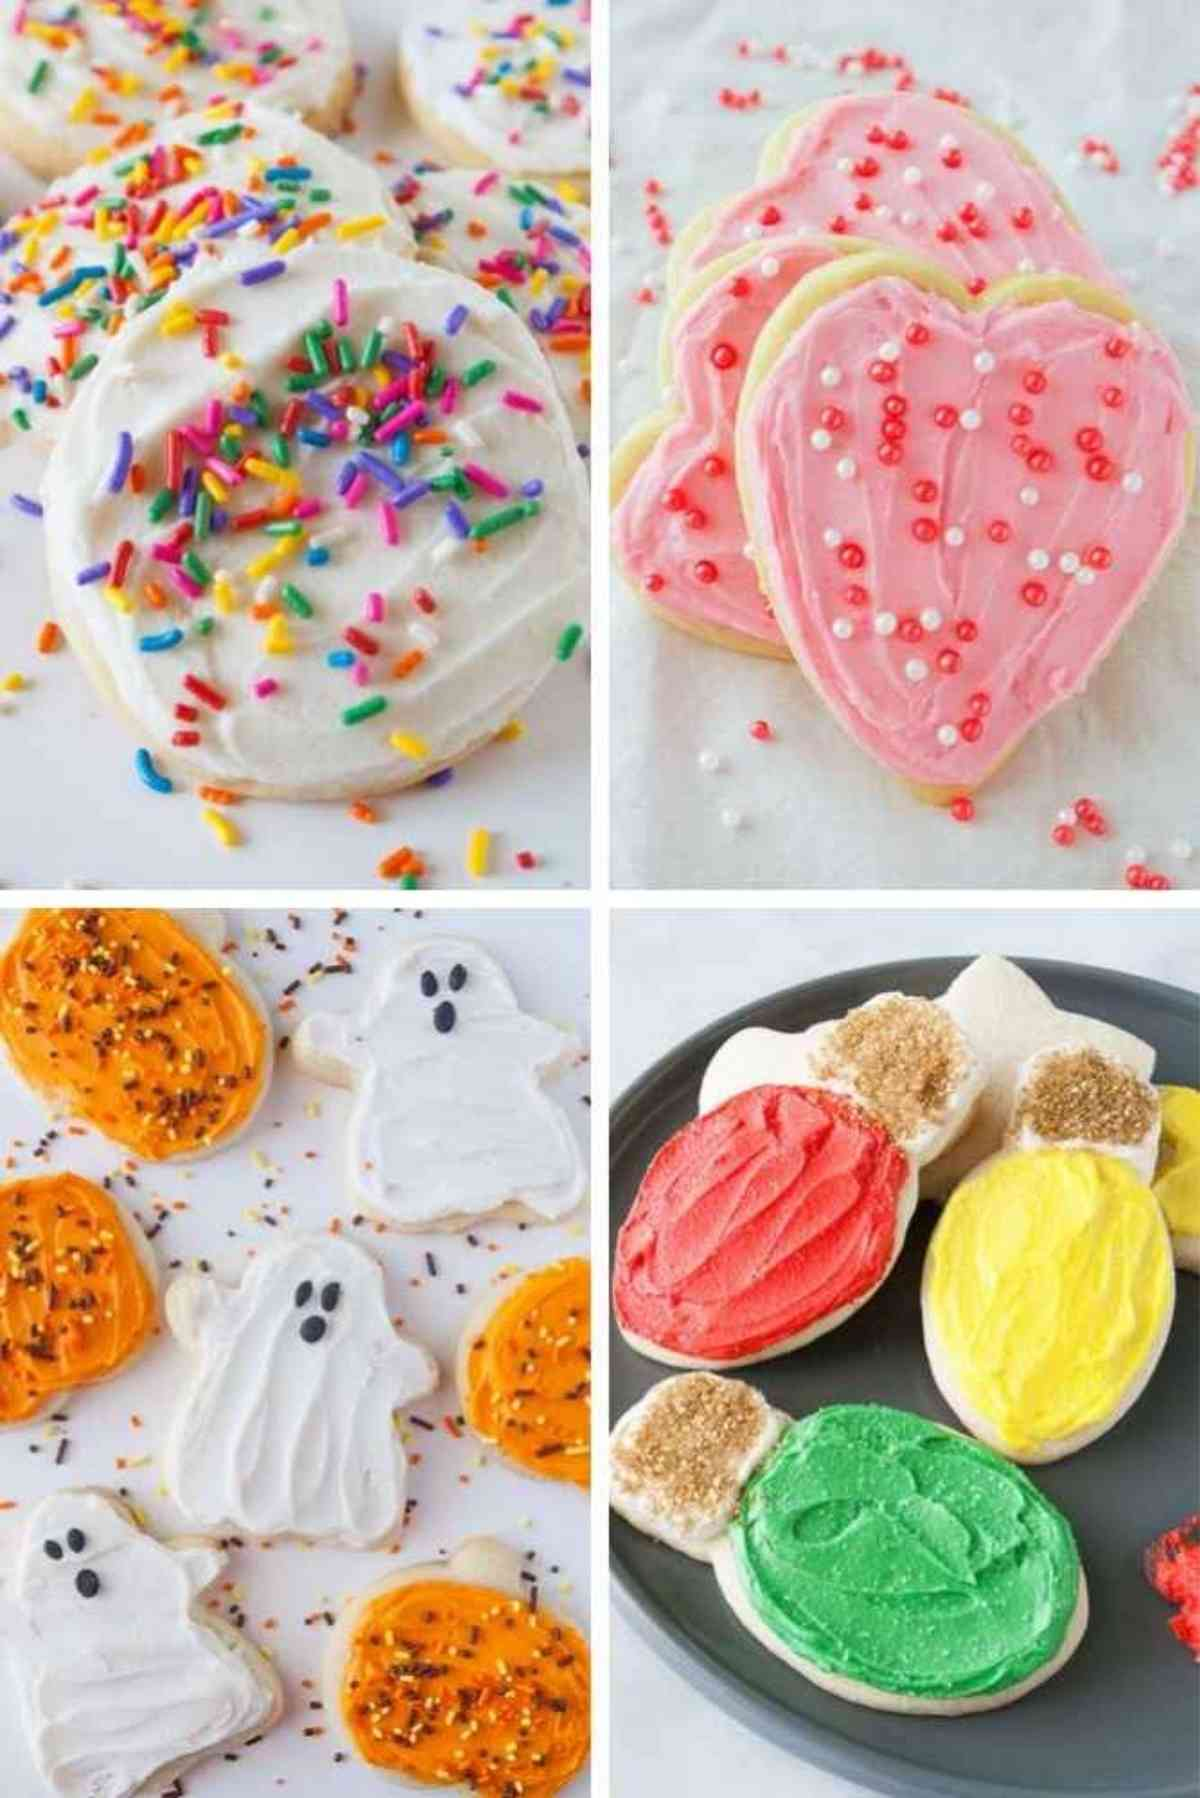 These almond sugar cookies cut out and decorated for valentine's day, Halloween, Christmas or just everyday!